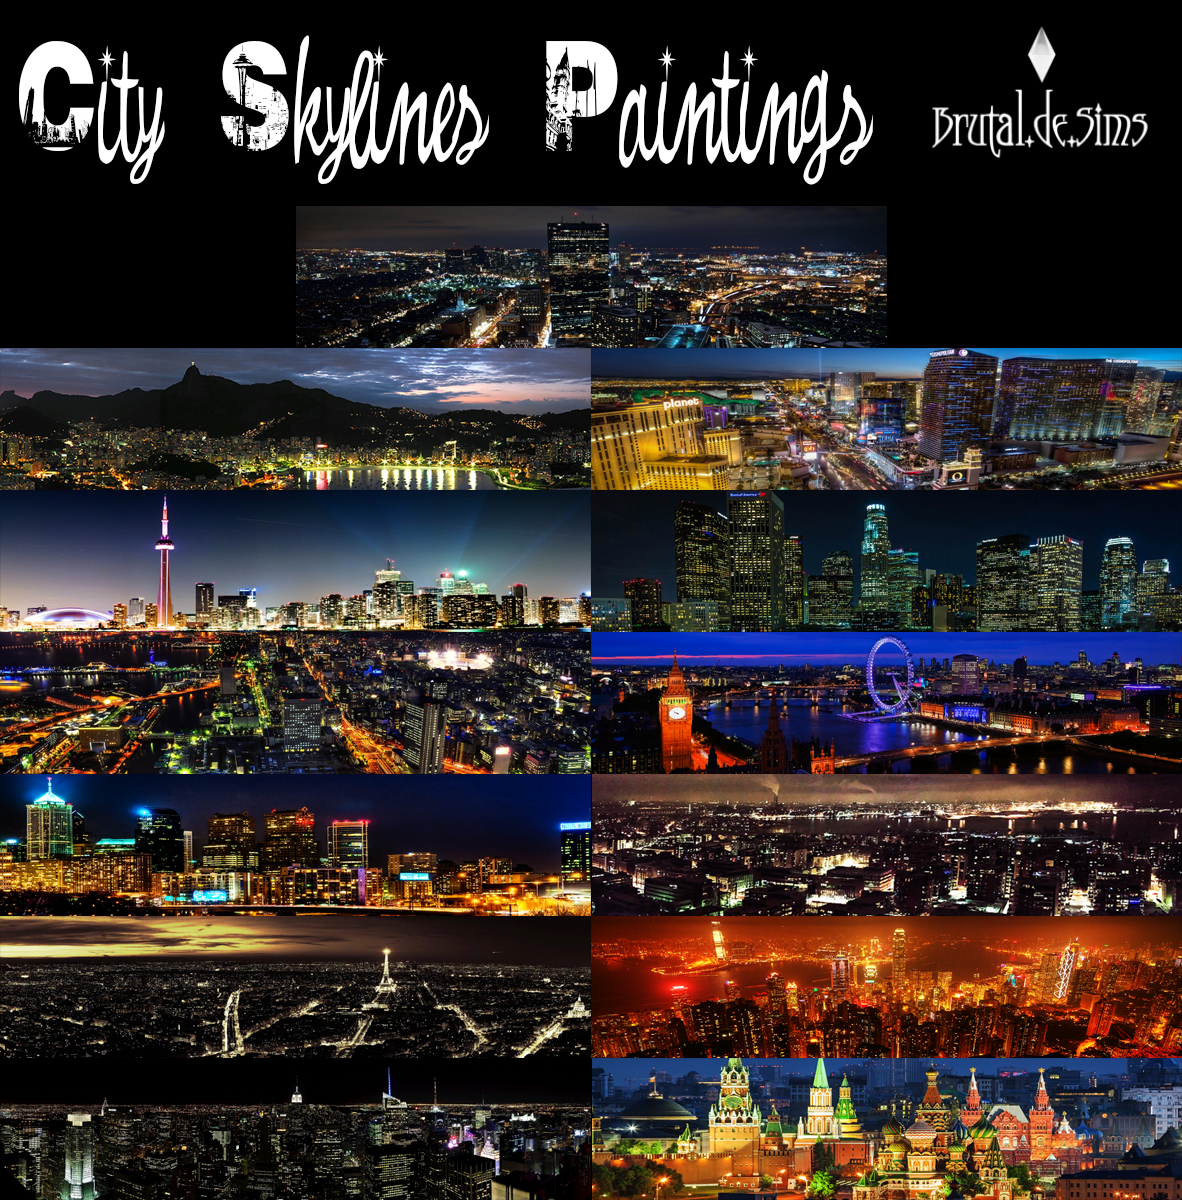 City Skylines paintings at Brutal de Sims4